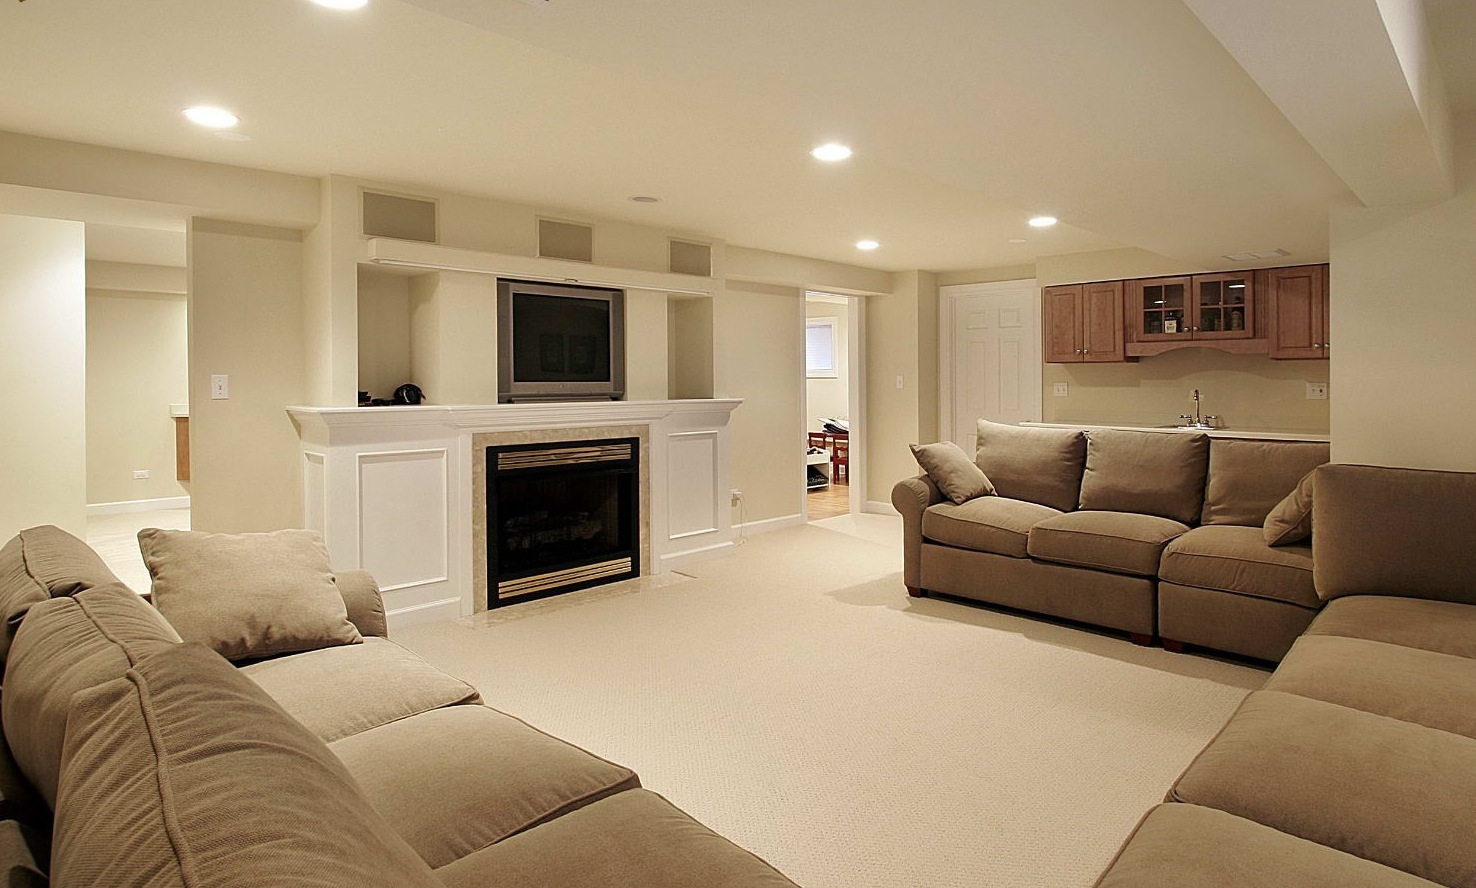 Home Basement Designs Decor Simple 30 Basement Remodeling Ideas & Inspiration 2017